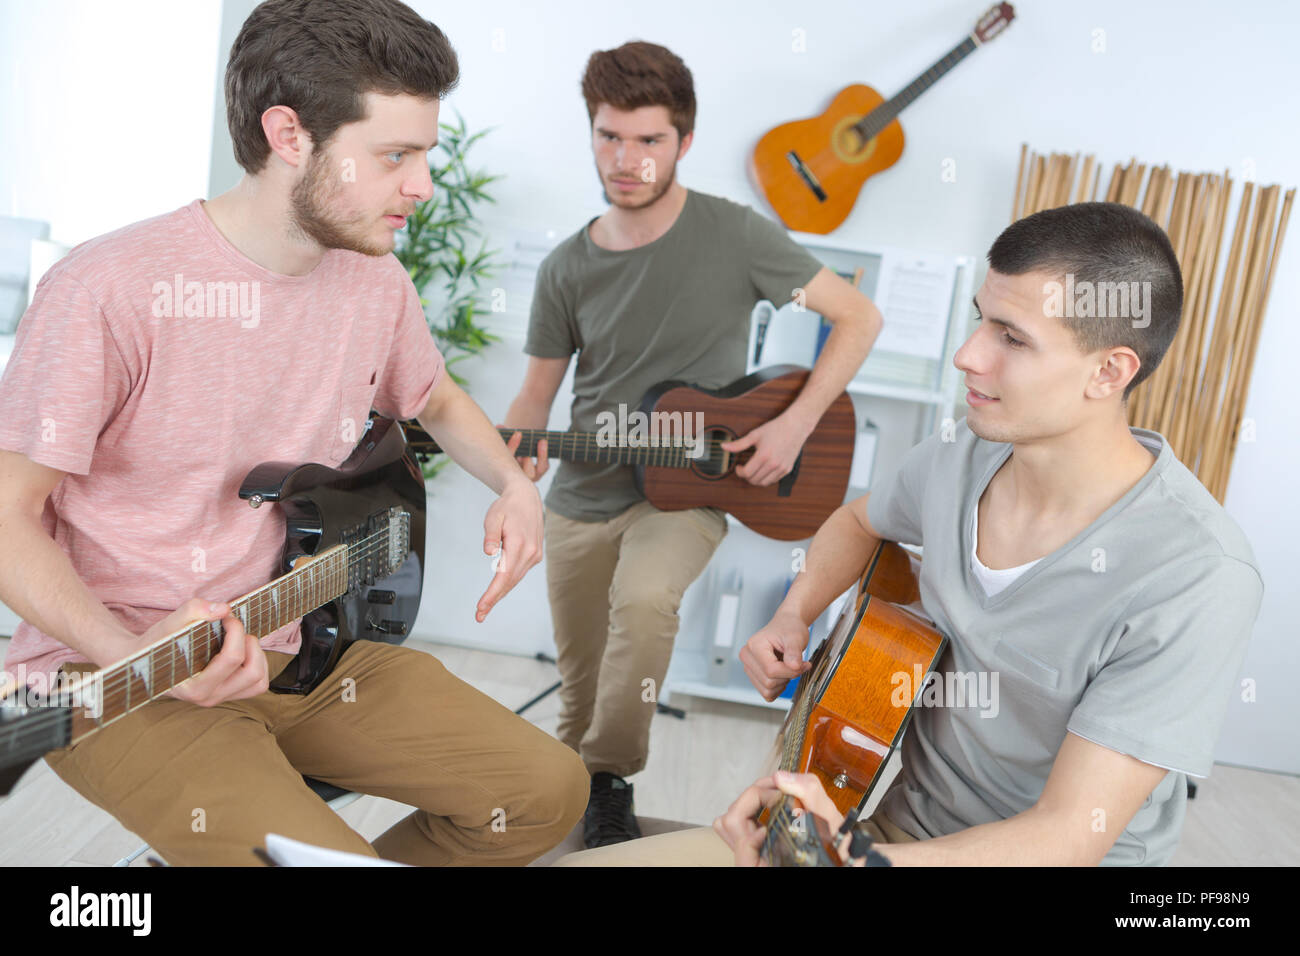 friends playing guitars together - Stock Image